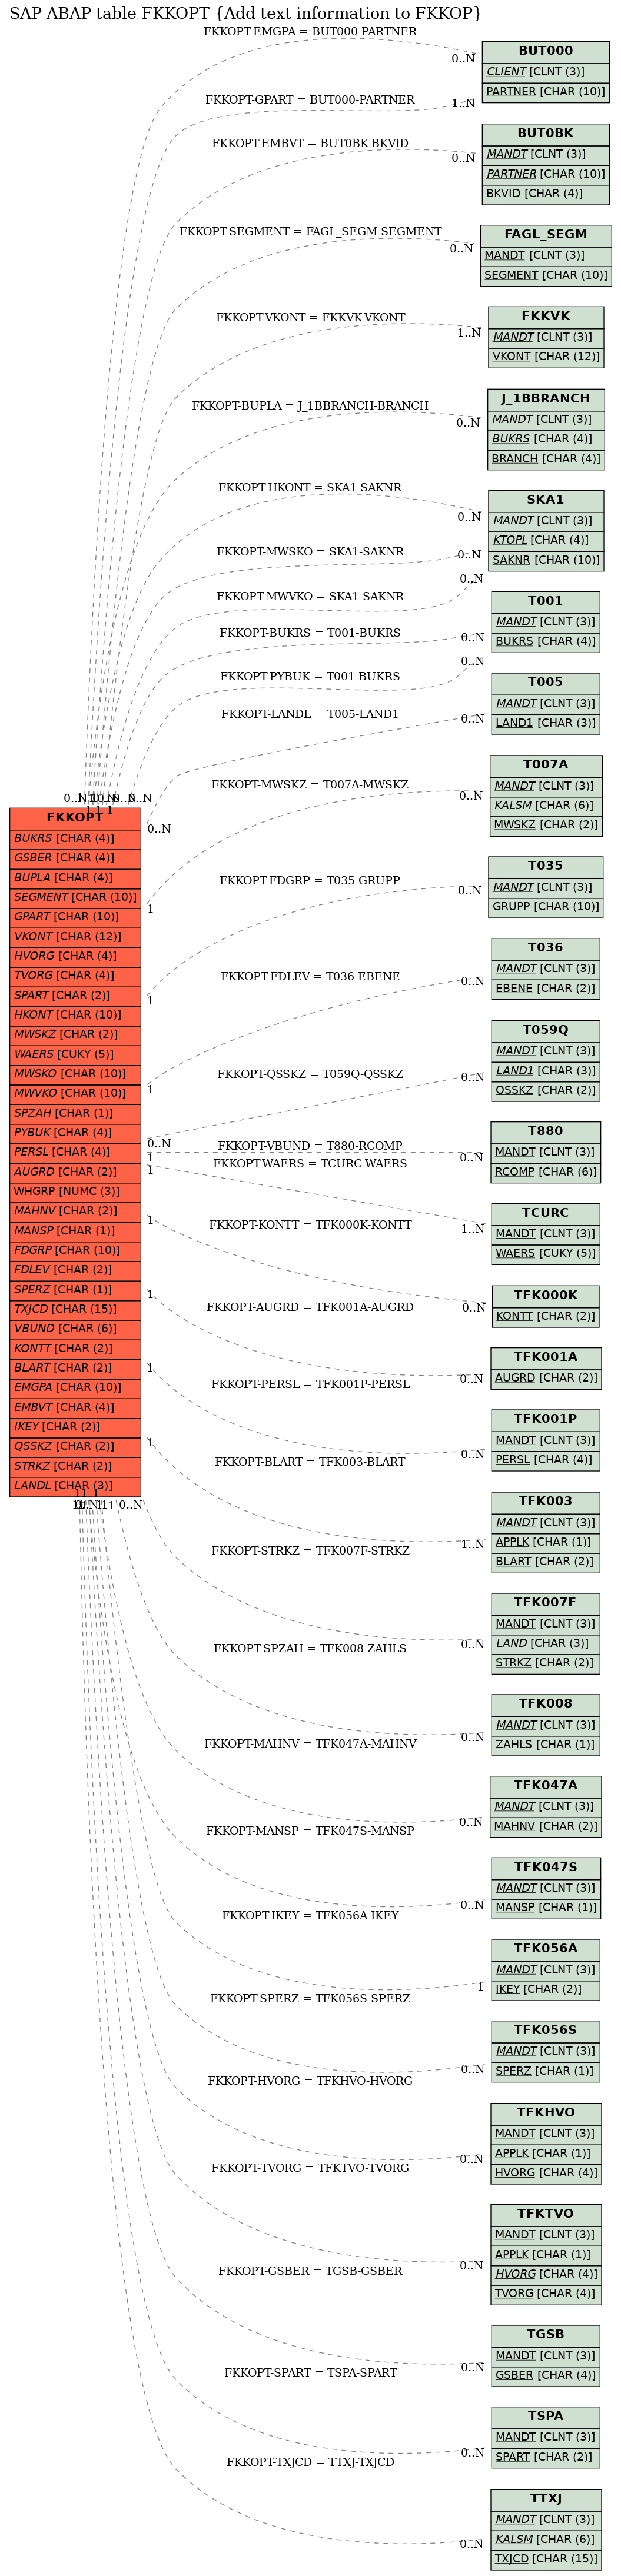 E-R Diagram for table FKKOPT (Add text information to FKKOP)